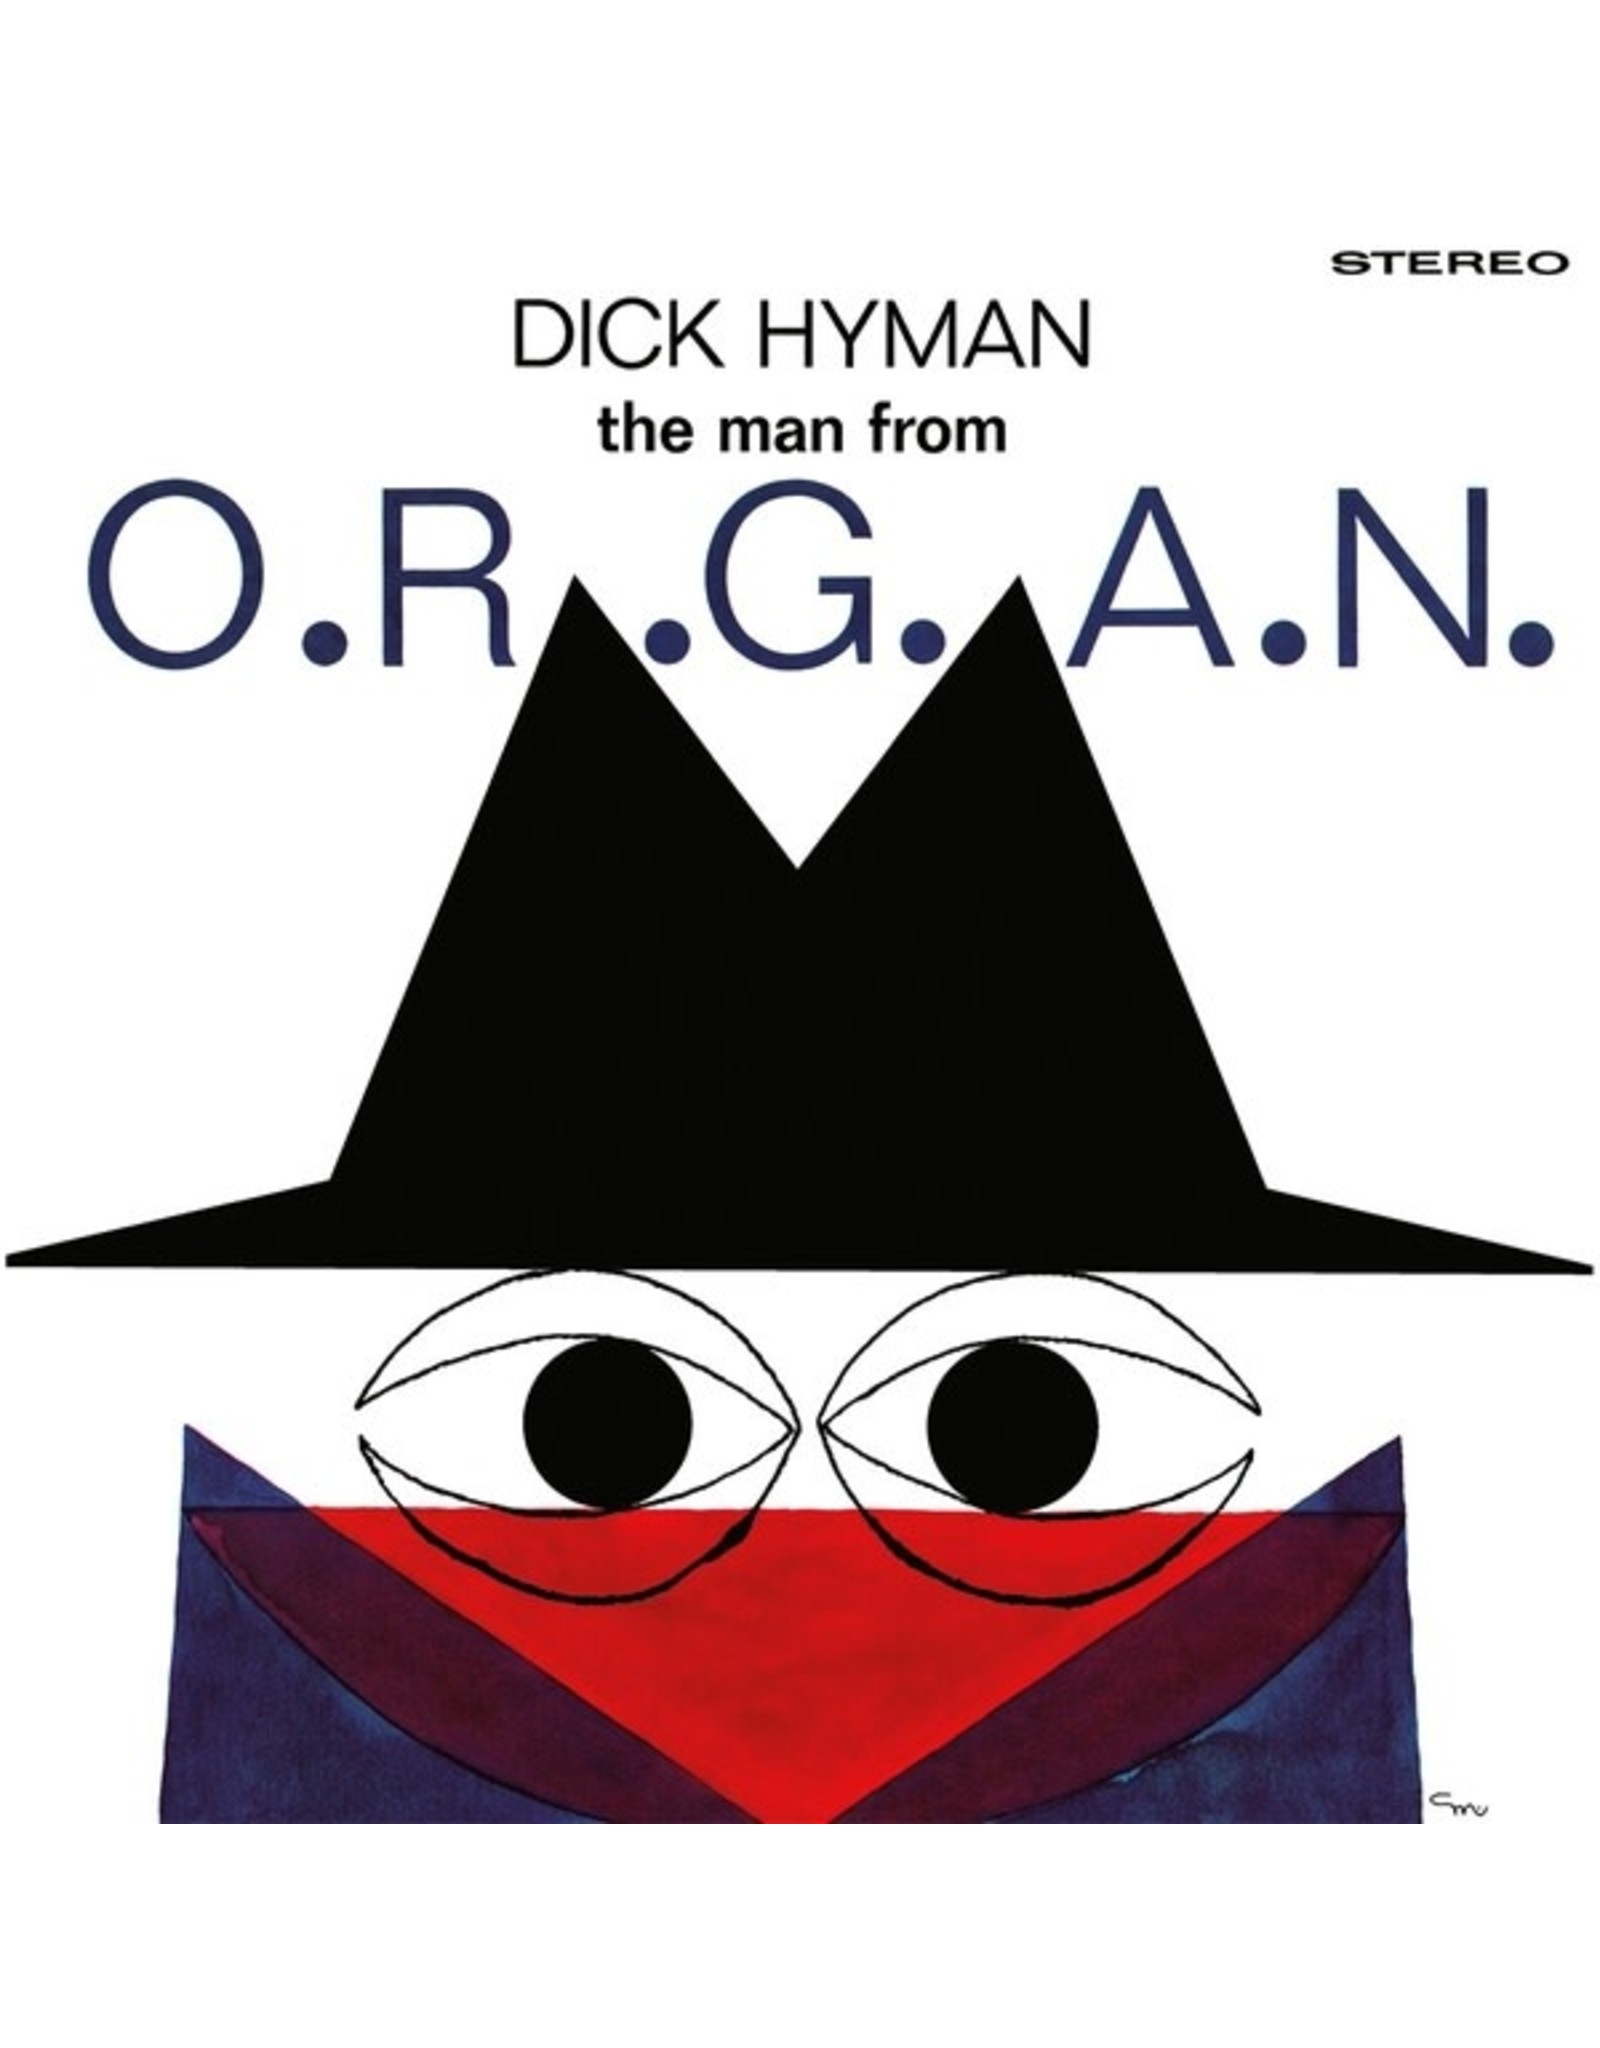 Pleasure for Music Hyman, Dick: The Man From O.R.G.A.N. LP